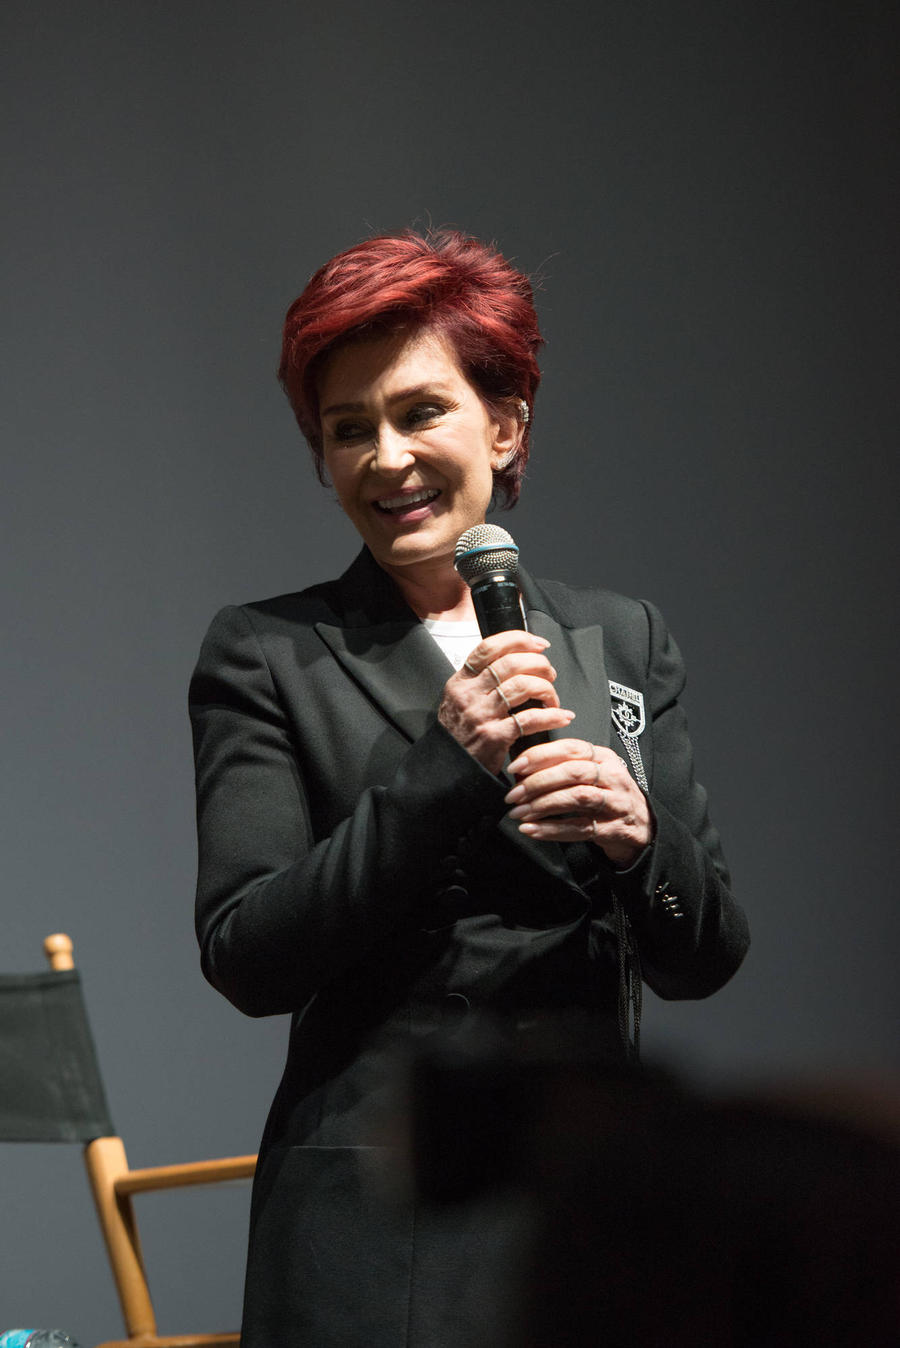 Sharon Osbourne Confirmed For X Factor Return